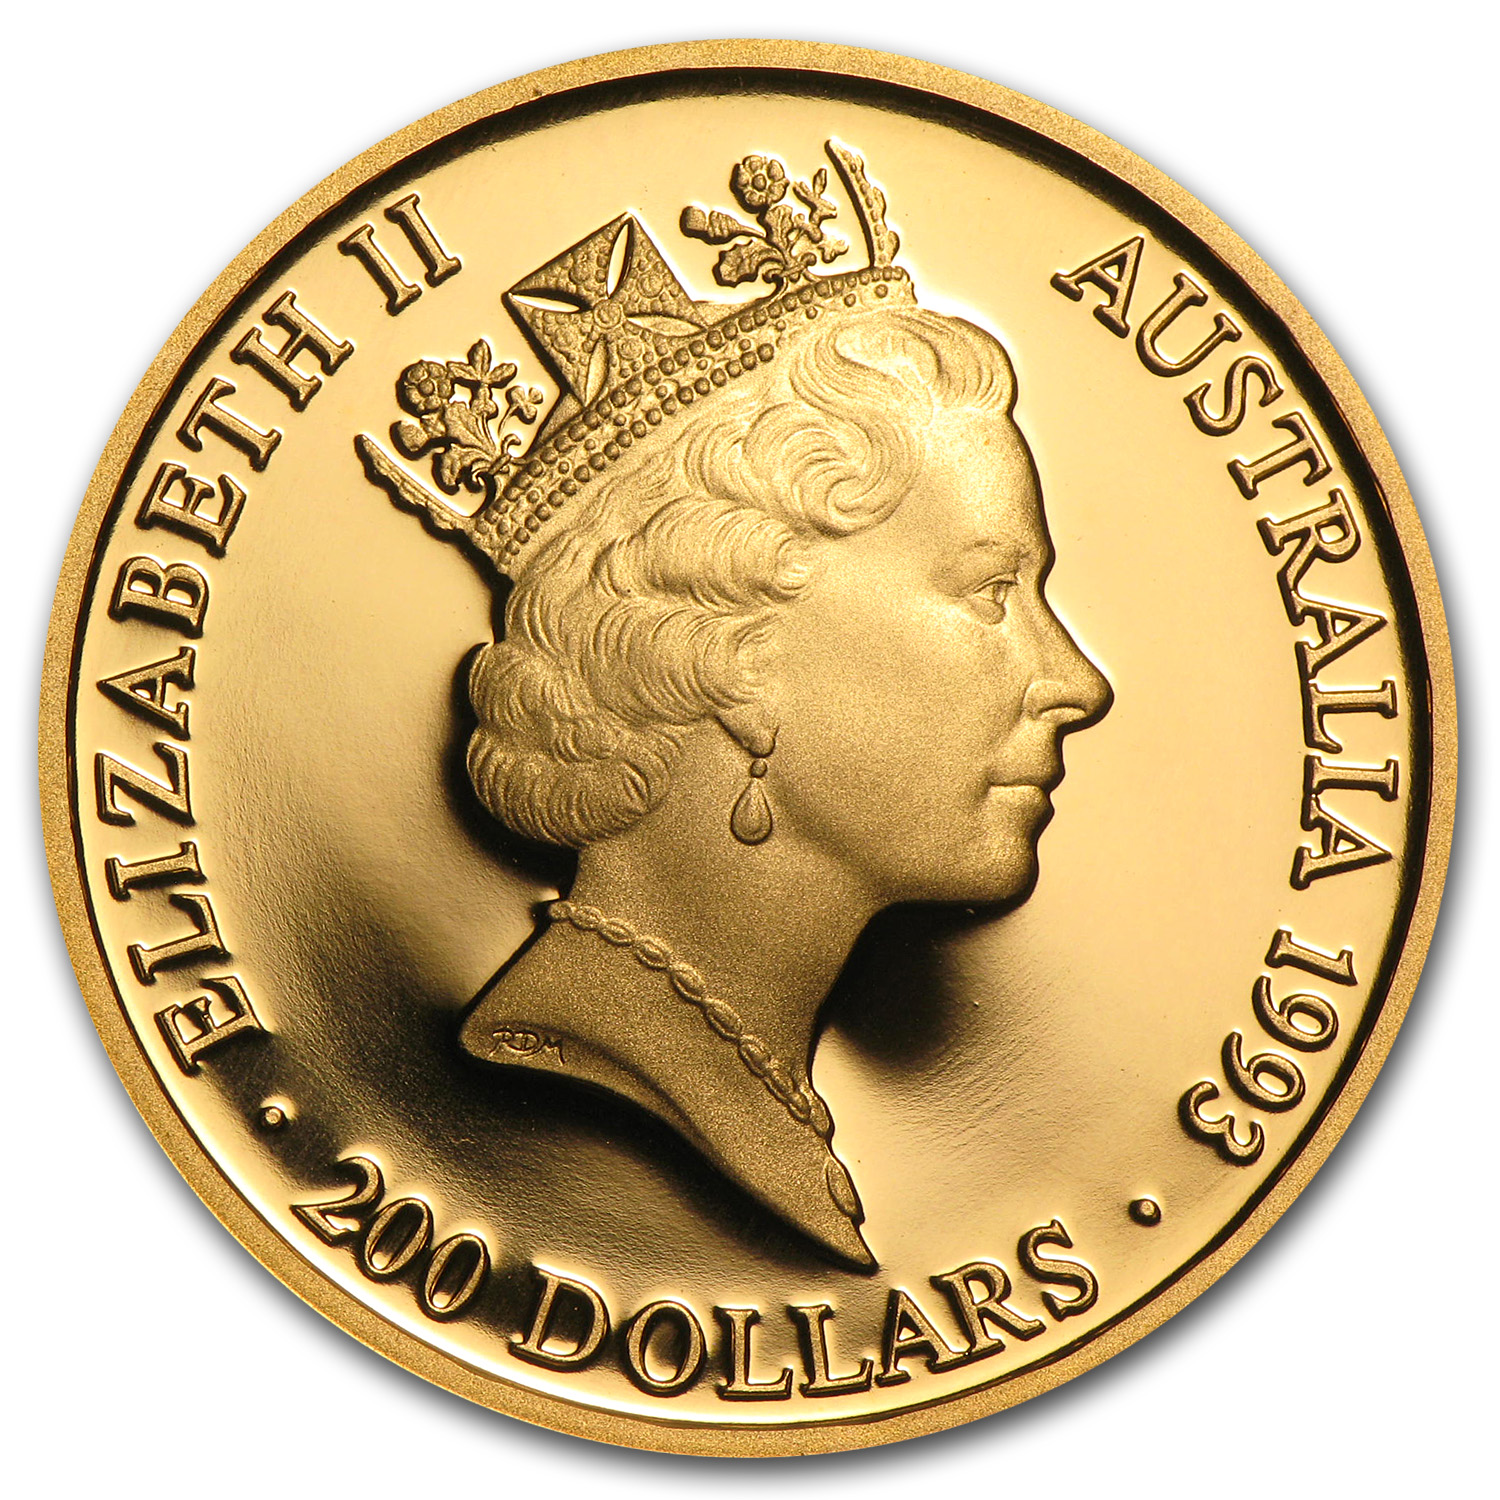 Australia 1993 200 Dollars Gold Proof Olympics